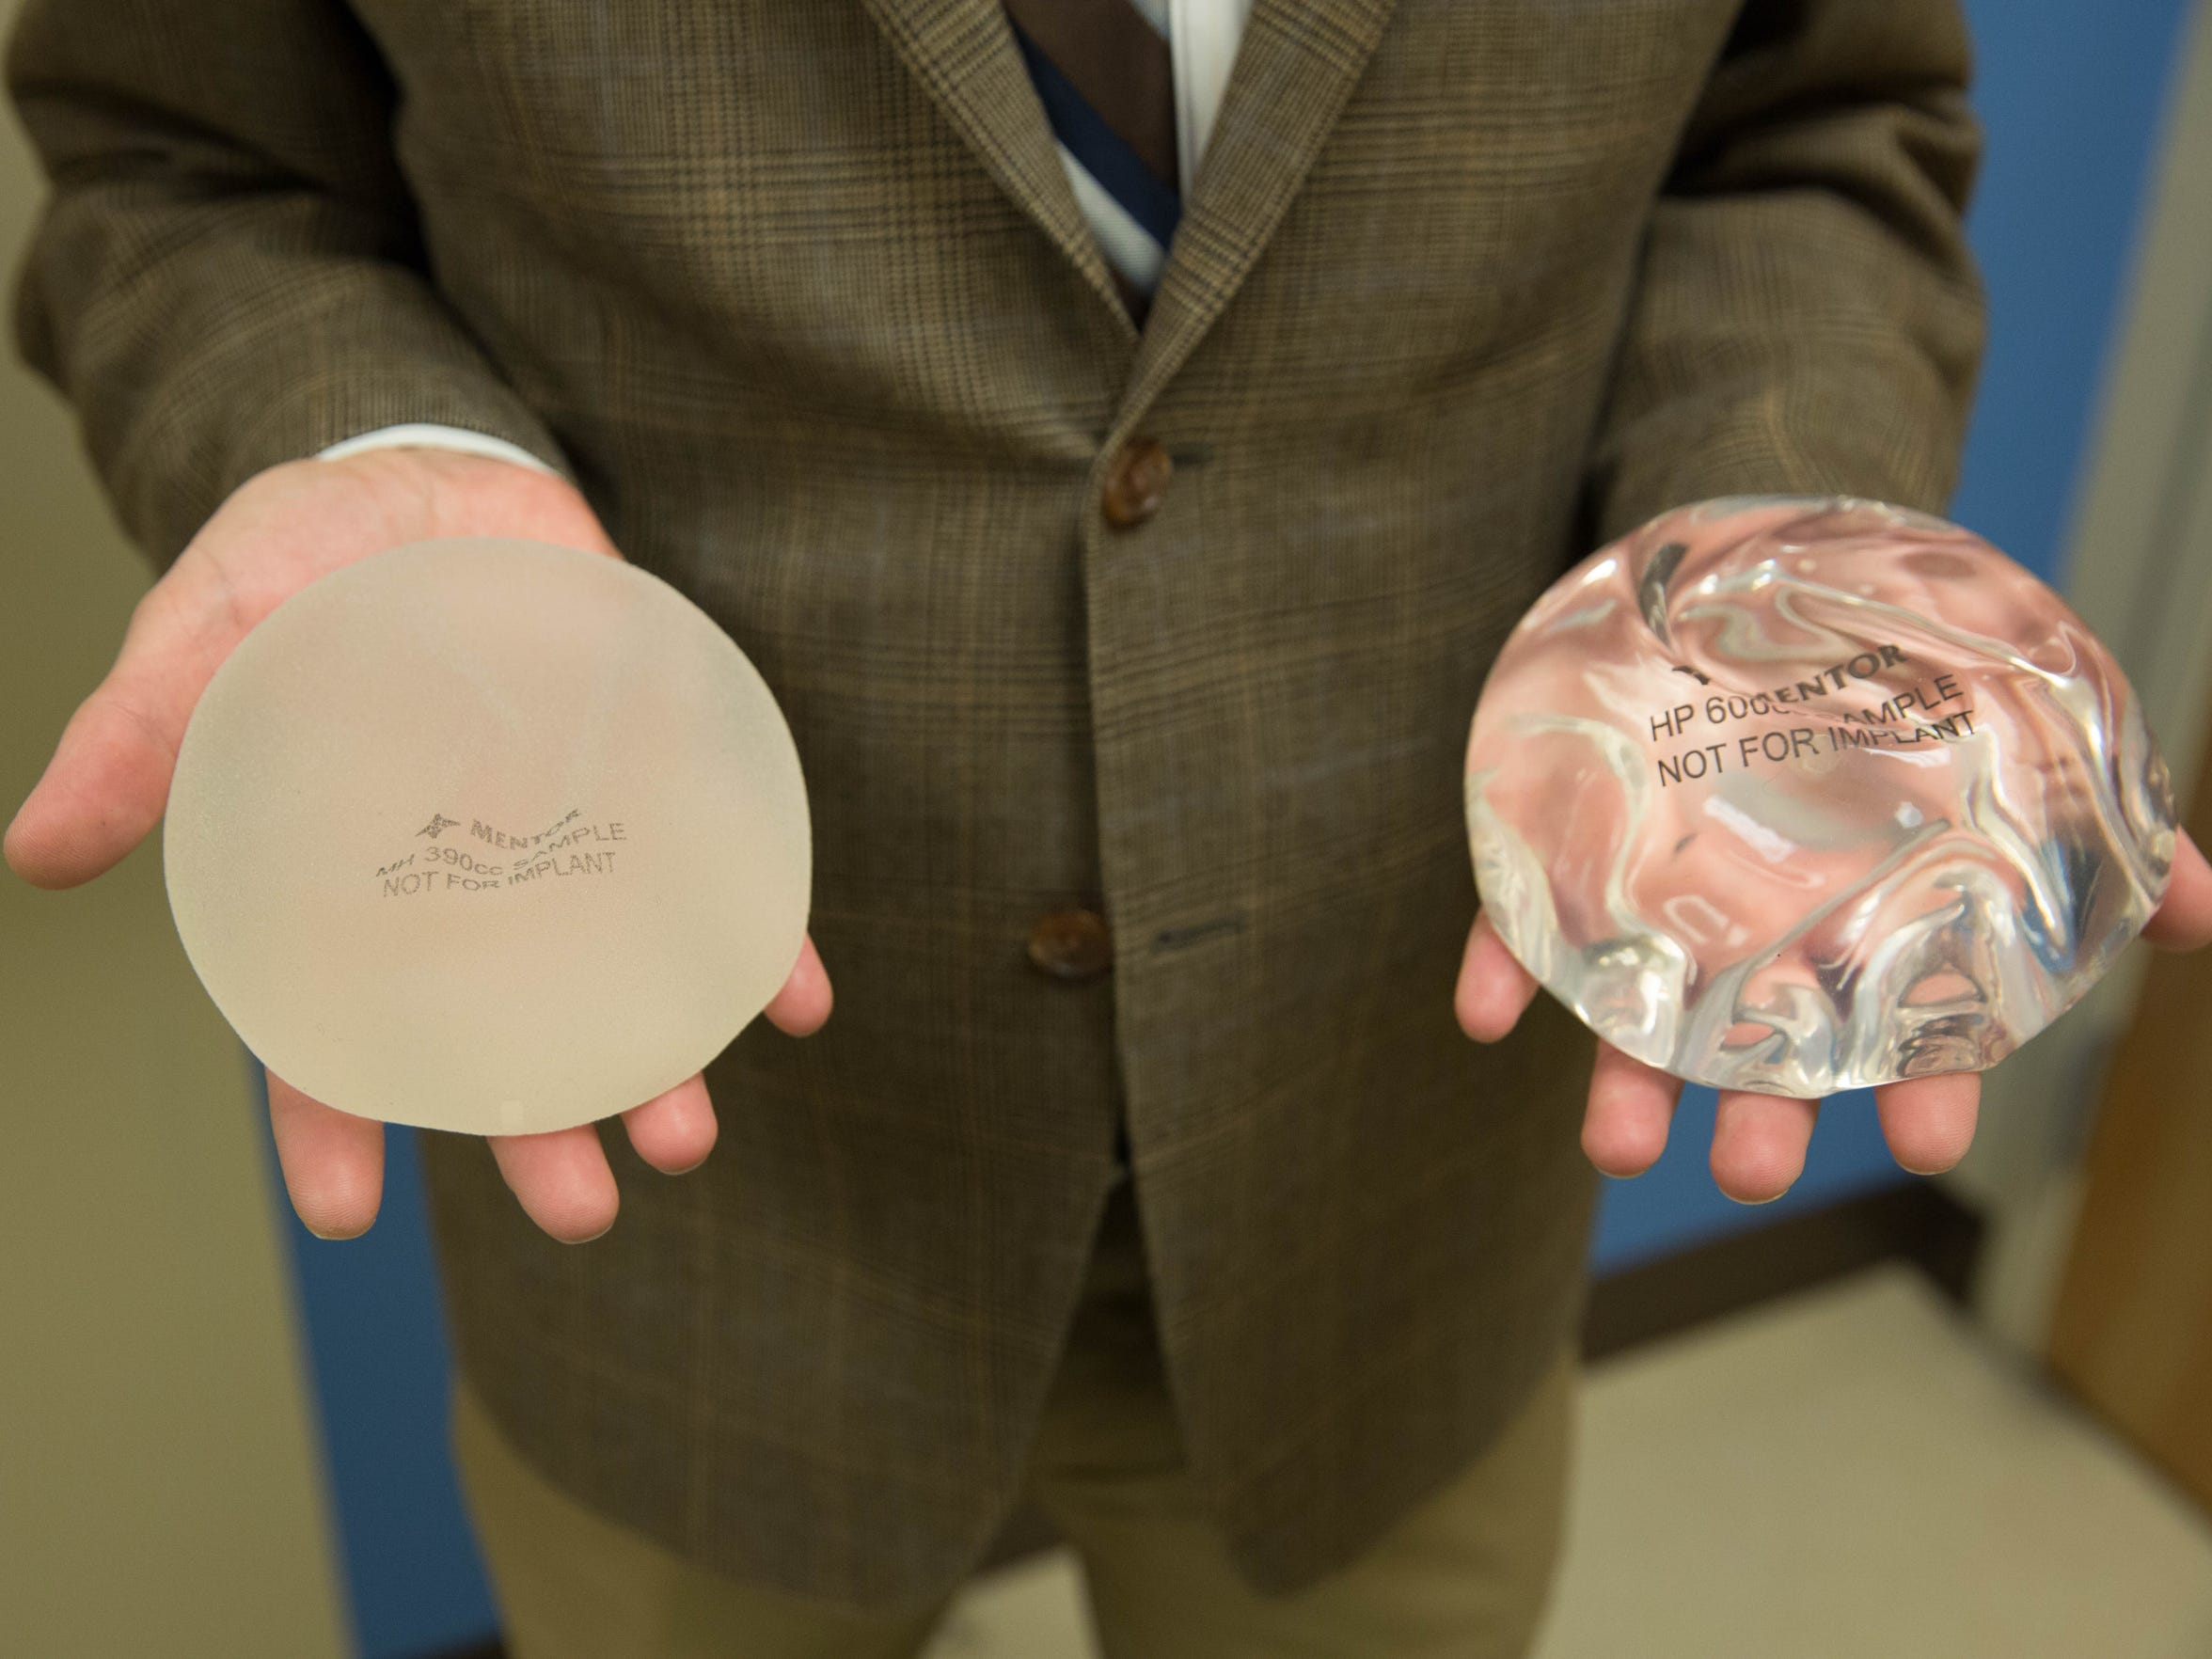 Dr. Paul Phillips holds two different types of breast implants, one for reconstructive surgery, left, and one for cosmetic surgery, right.